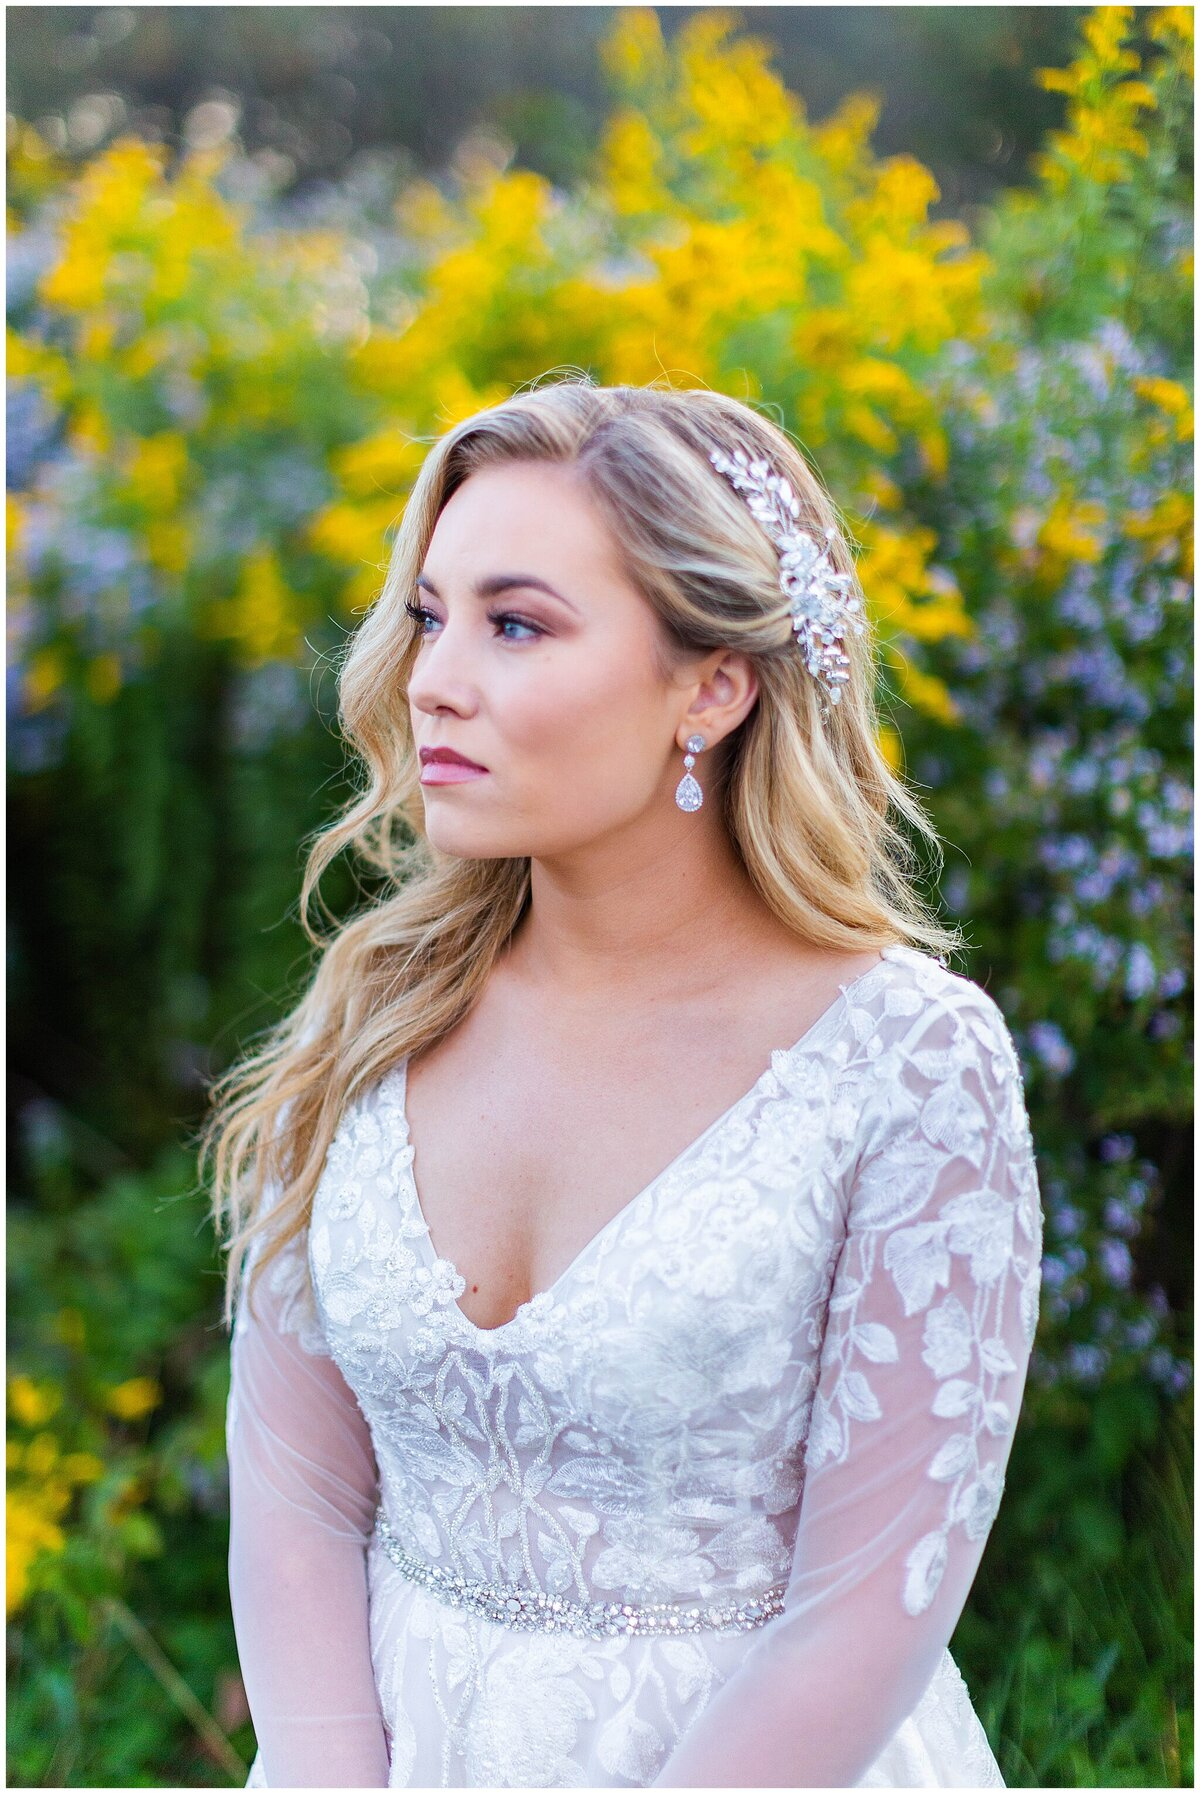 Madalyn Bridals124 September 19, 2019